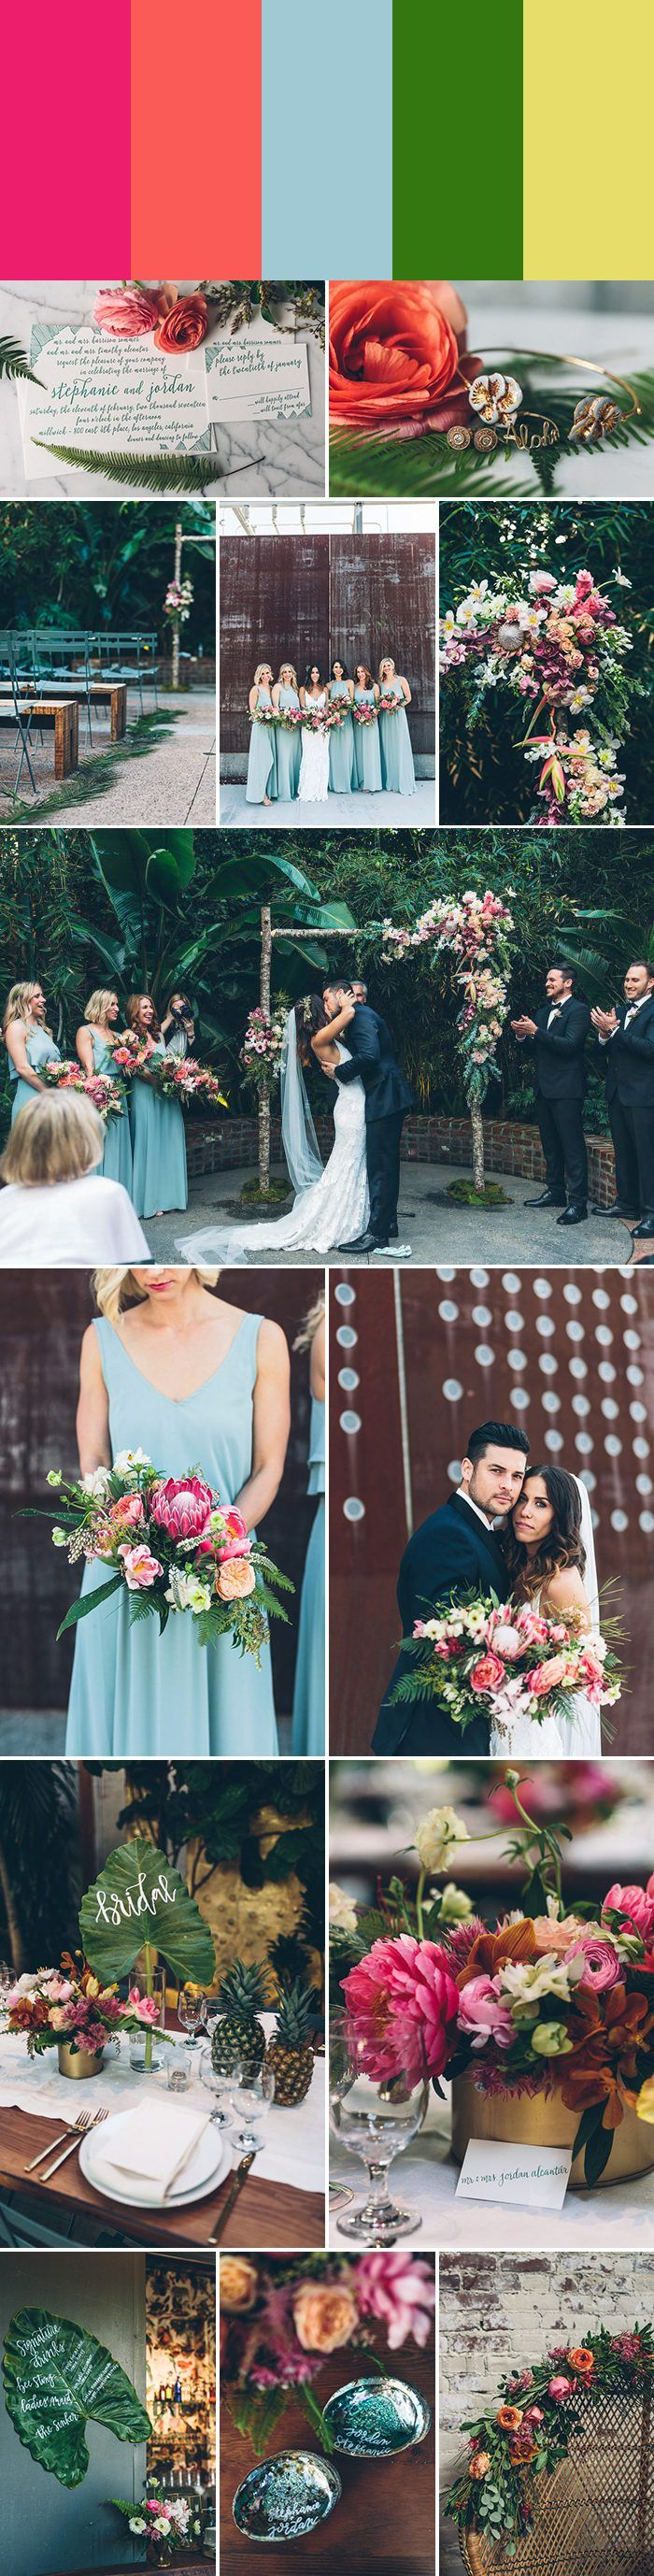 2018 Wedding Color Palette Inspiration: protea pink + tangerine + sky blue + shamrock + canary yellow | Image by Vitae Weddings